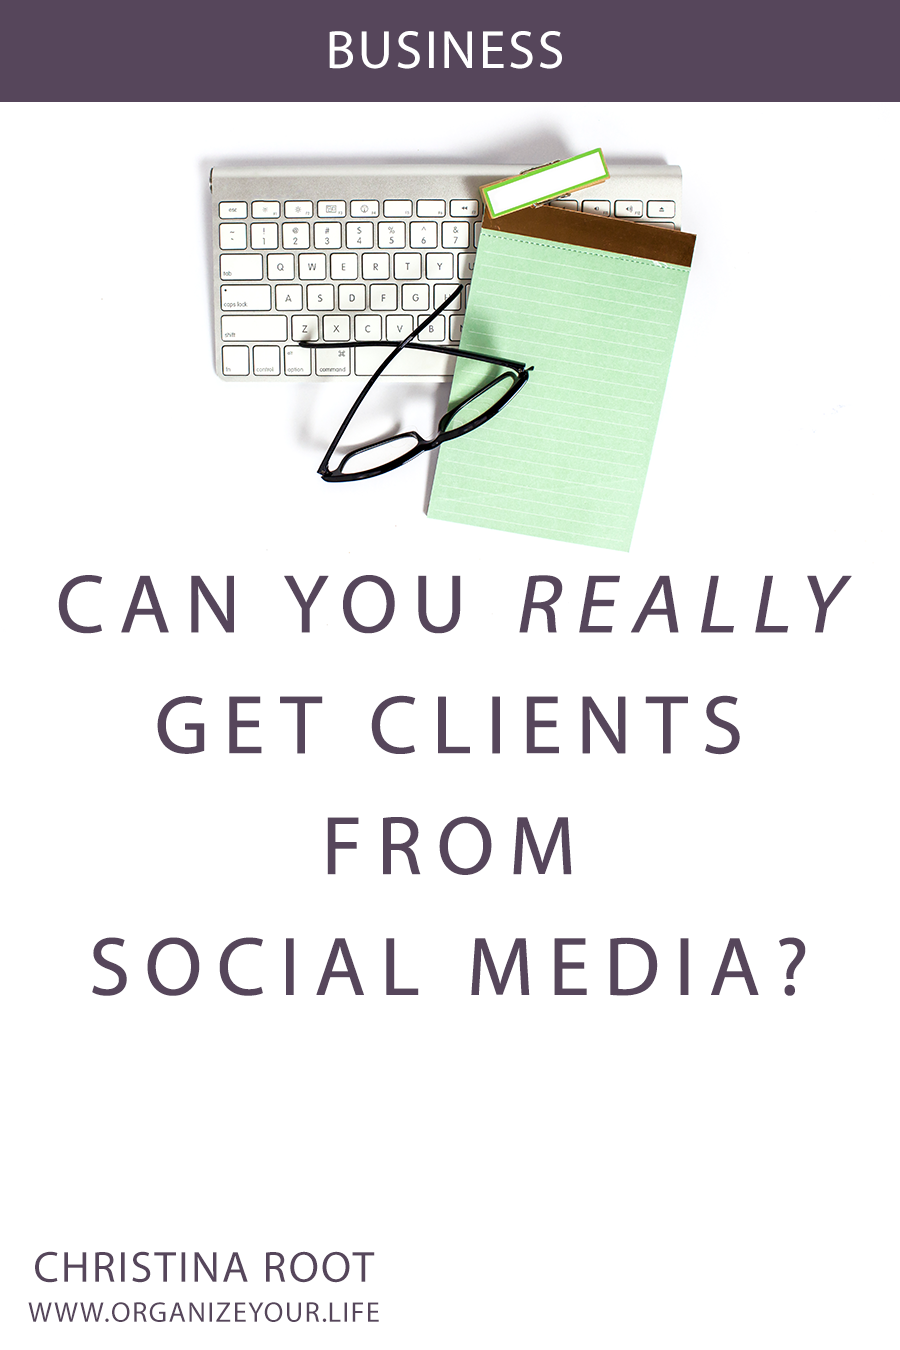 Can you REALLY get clients from social media?